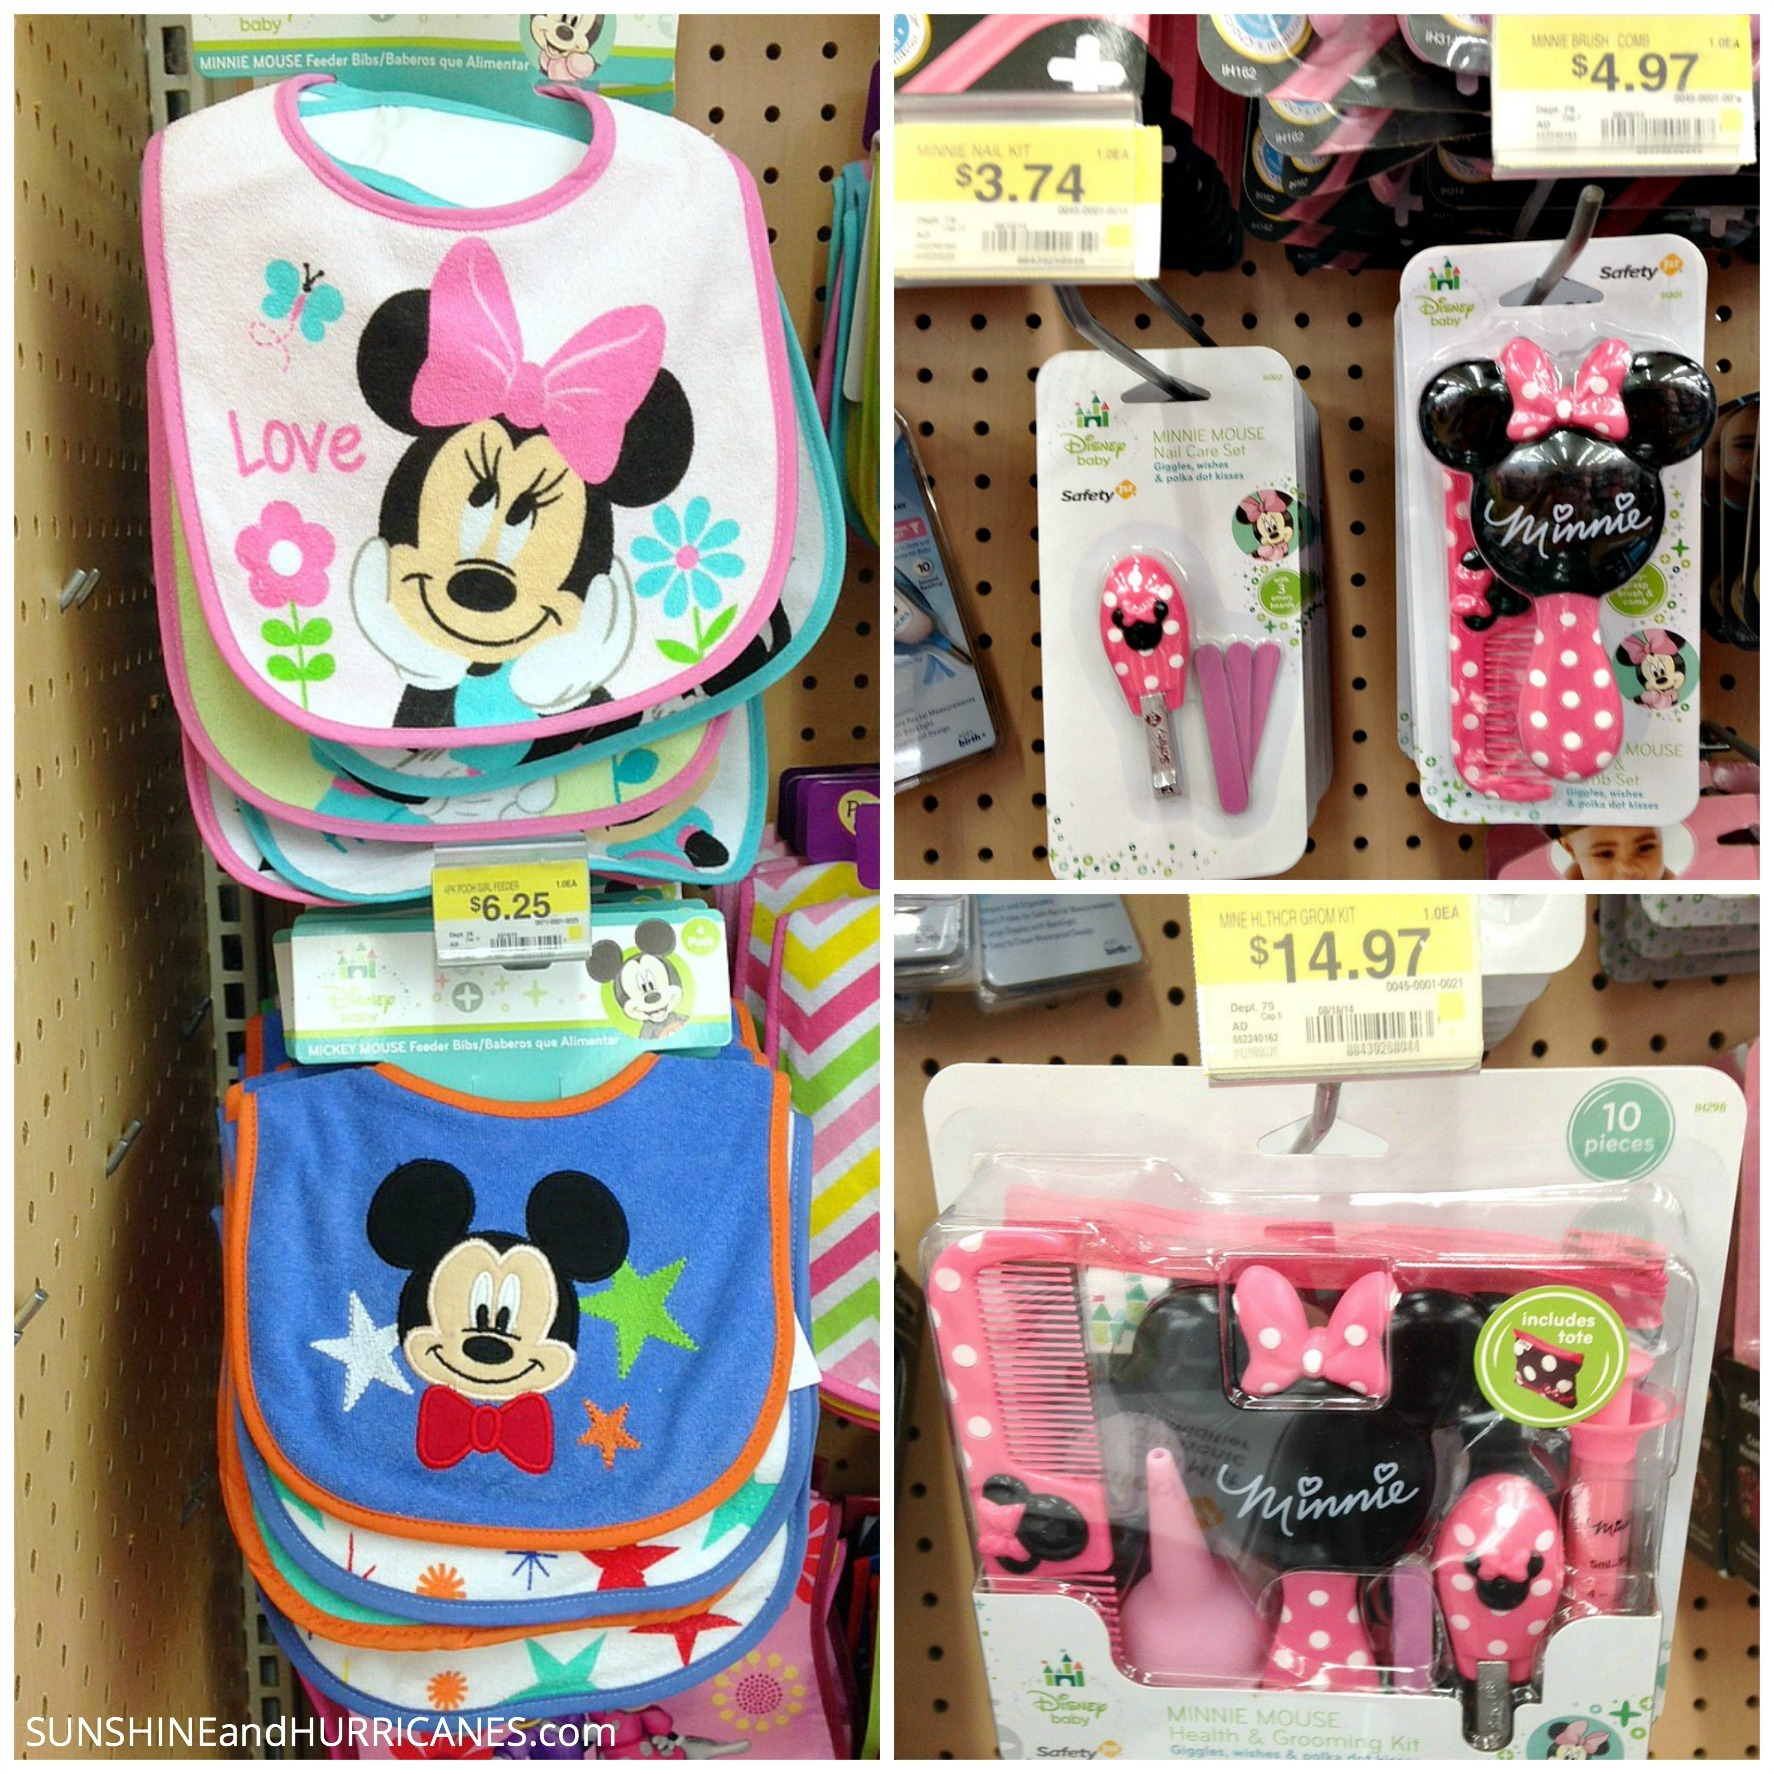 How To Create A Themed Baby Shower Gift Baby Disney Walmart Essentials  Collage